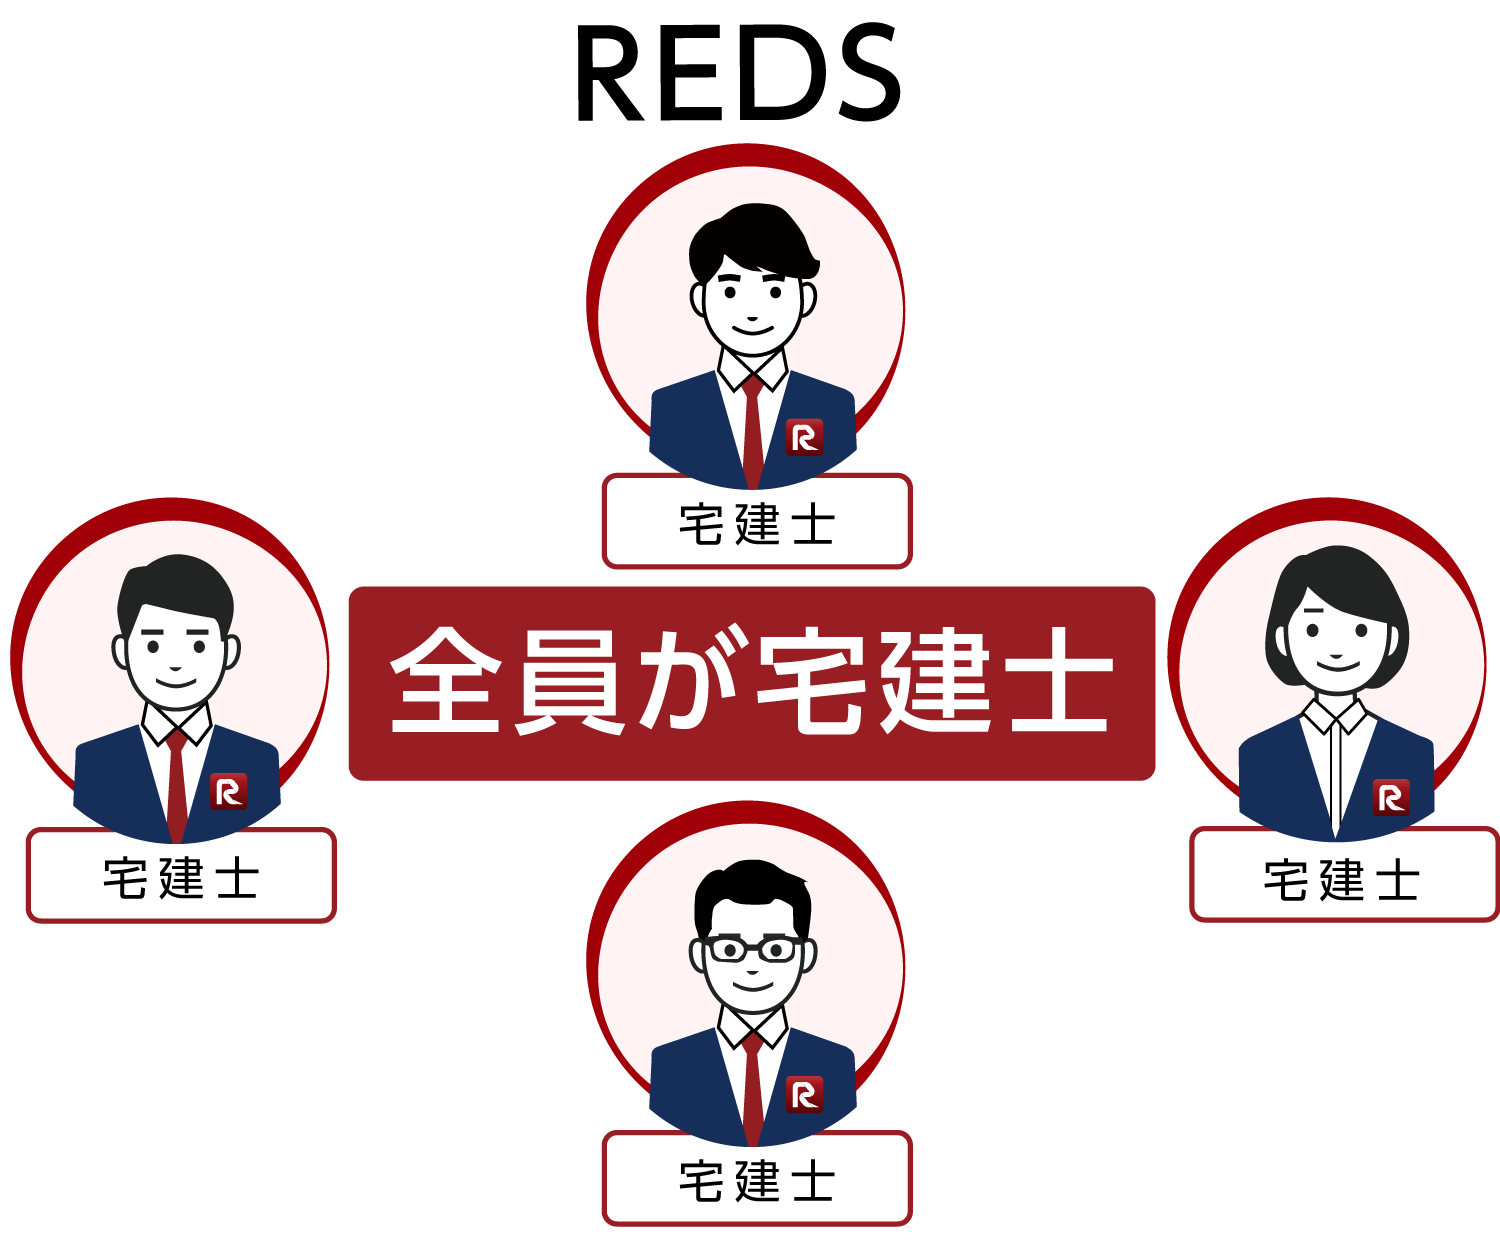 REDSは全員が宅建士